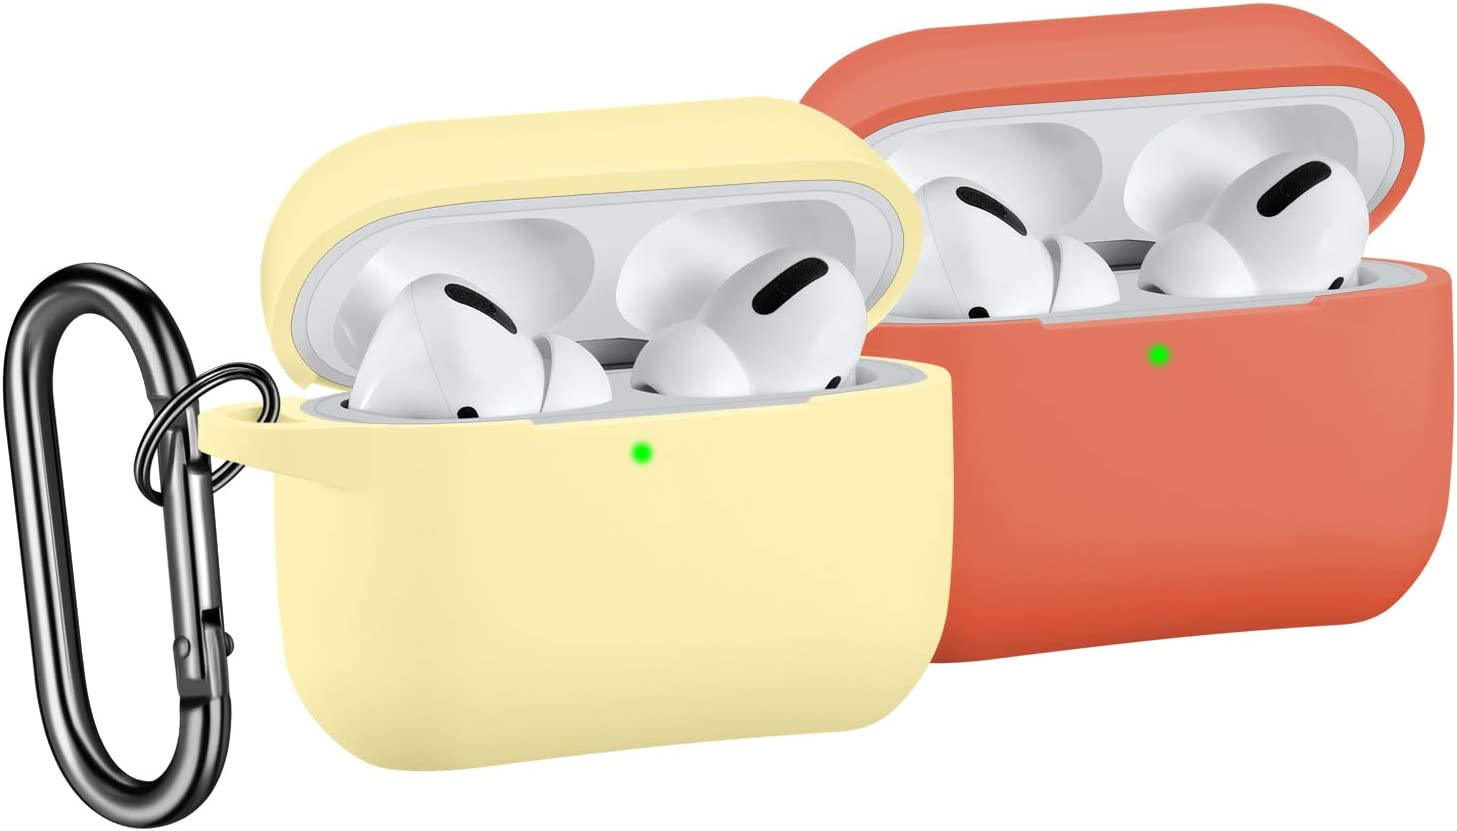 [2 Pack] SNBLK Designed for Airpods Pro Case Cover Silicone Protective Charging Case Skin with Keychain Compatible for Apple Airpods Pro 2019, (Front LED Visible) Yellow/Coral